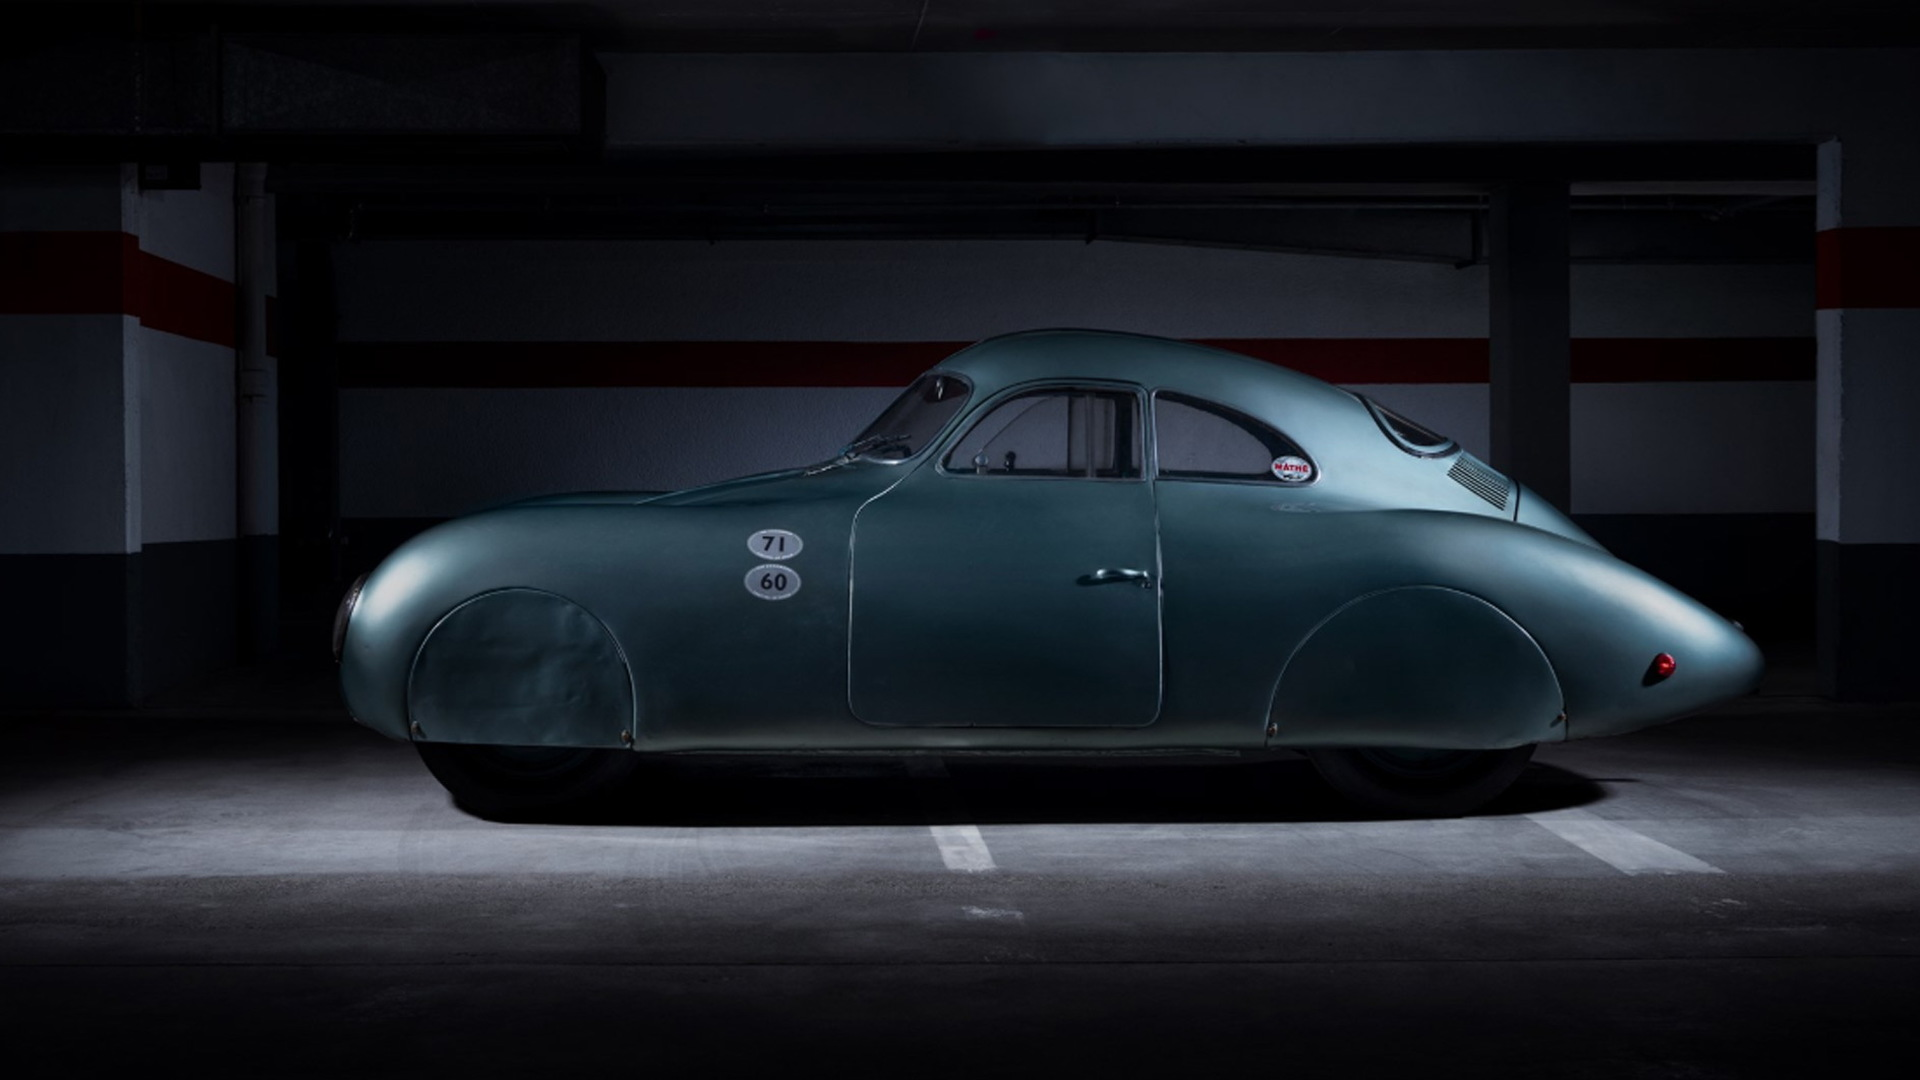 Oldest surviving Porsche prototype, from 1939, set to be auctioned off